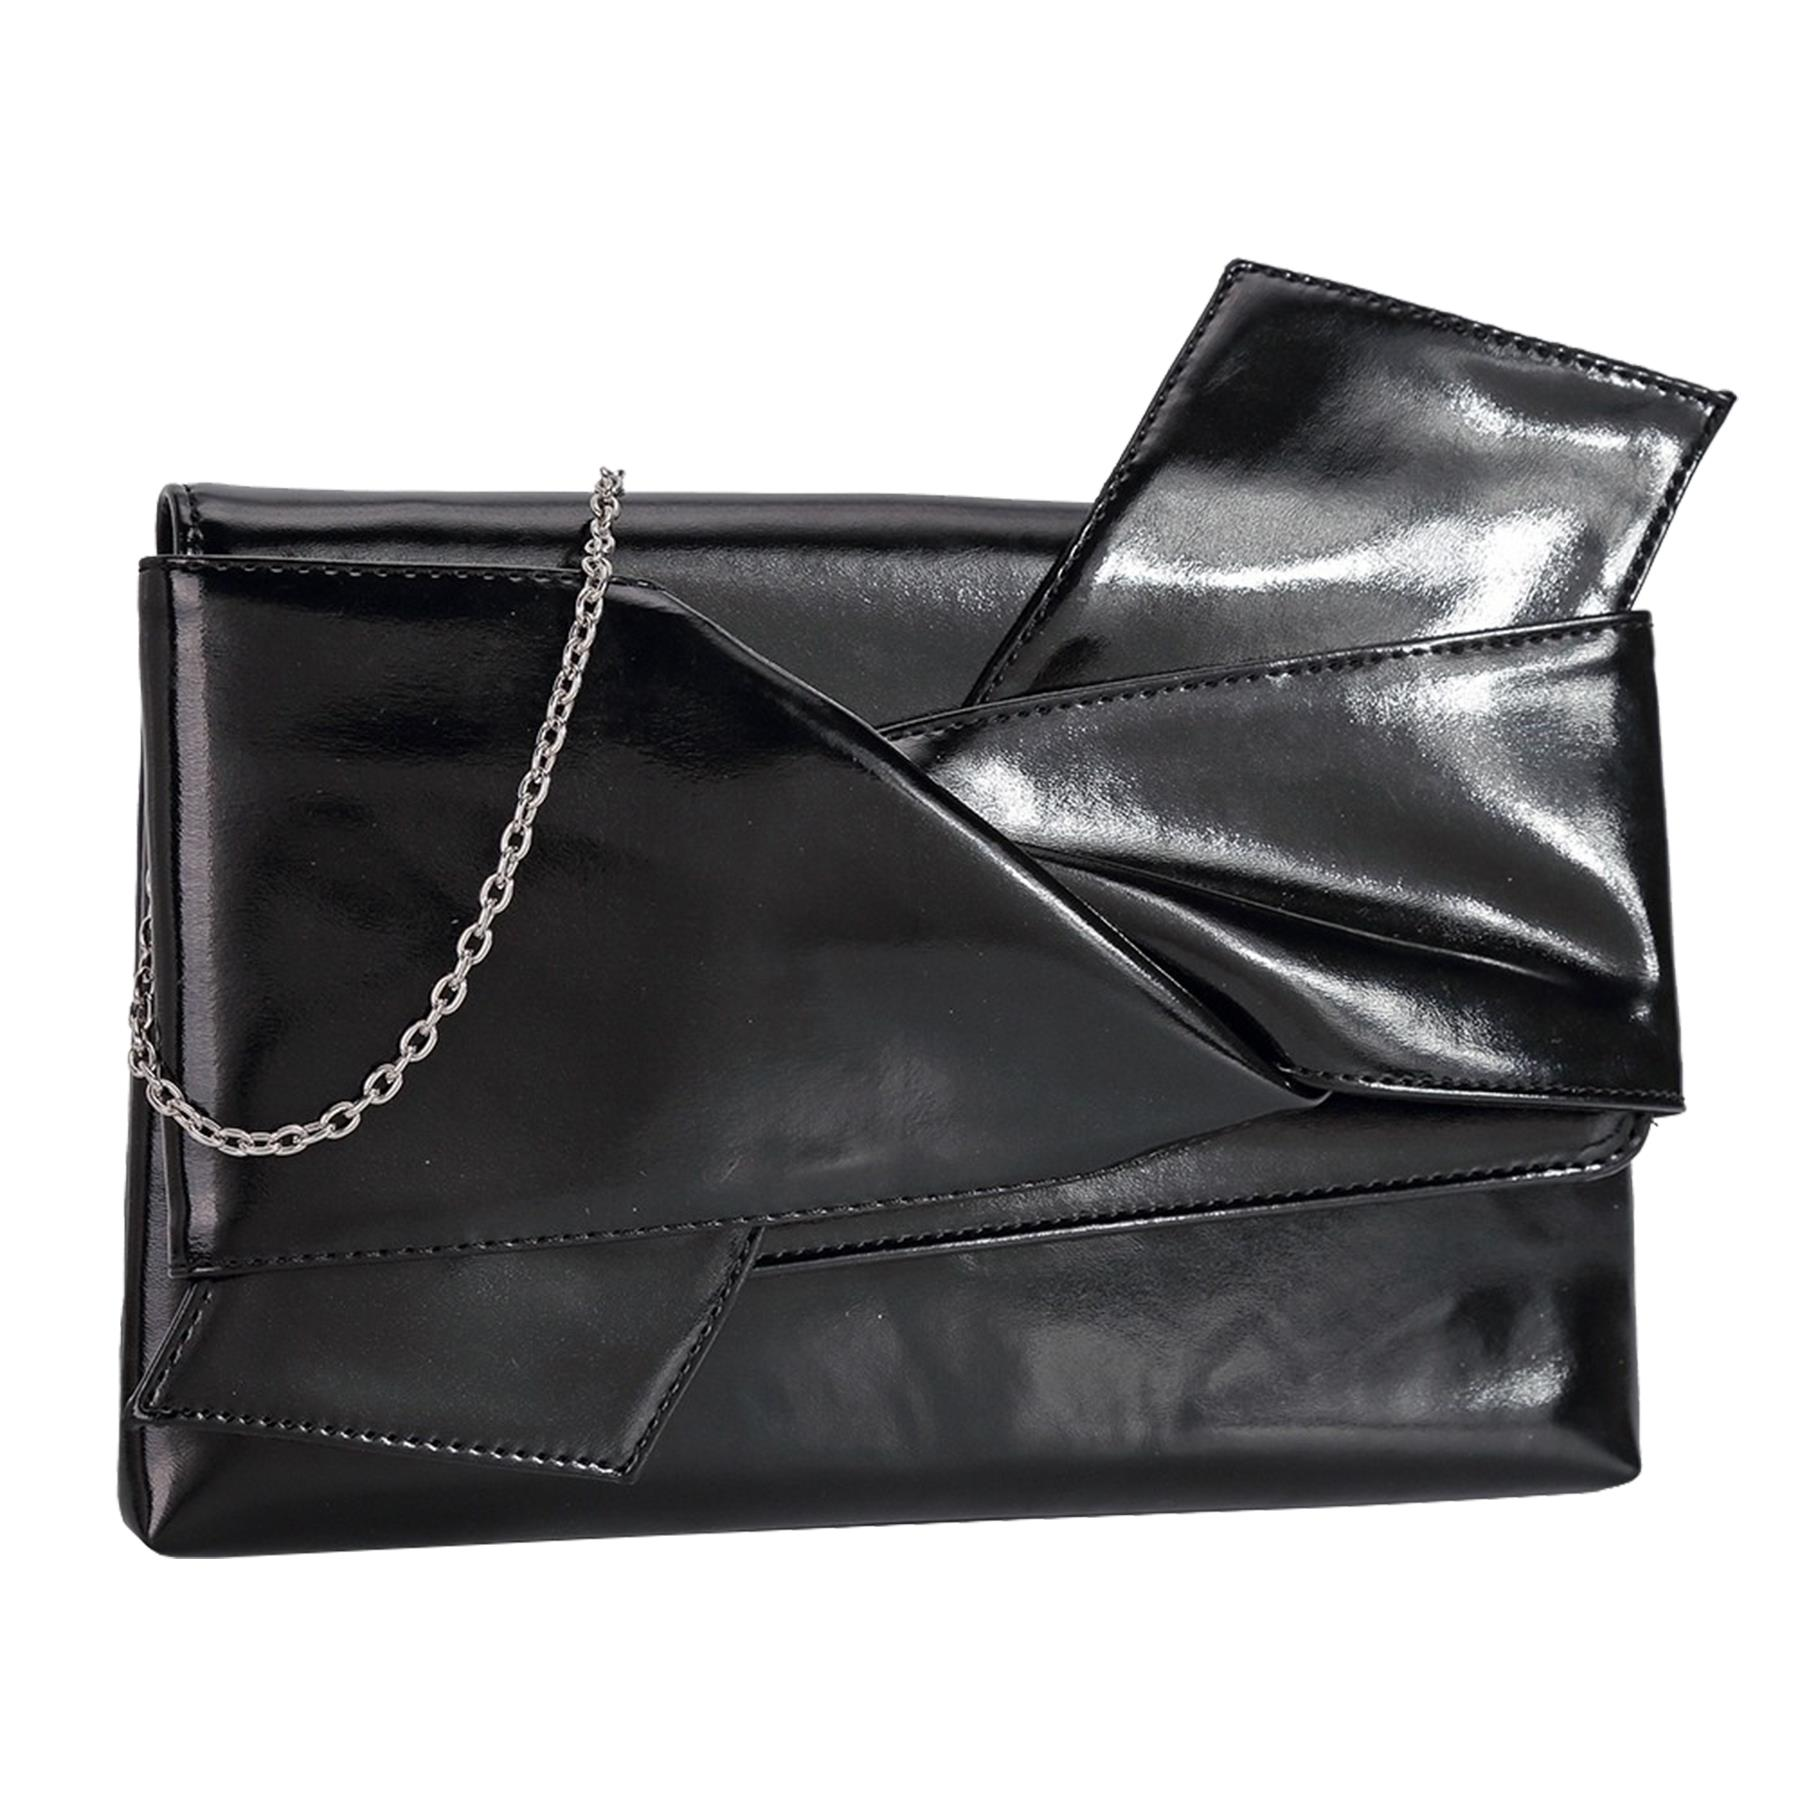 New-Knot-Detail-Shiny-Synthetic-Leather-Ladies-Party-Clutch-Bag-Purse thumbnail 3